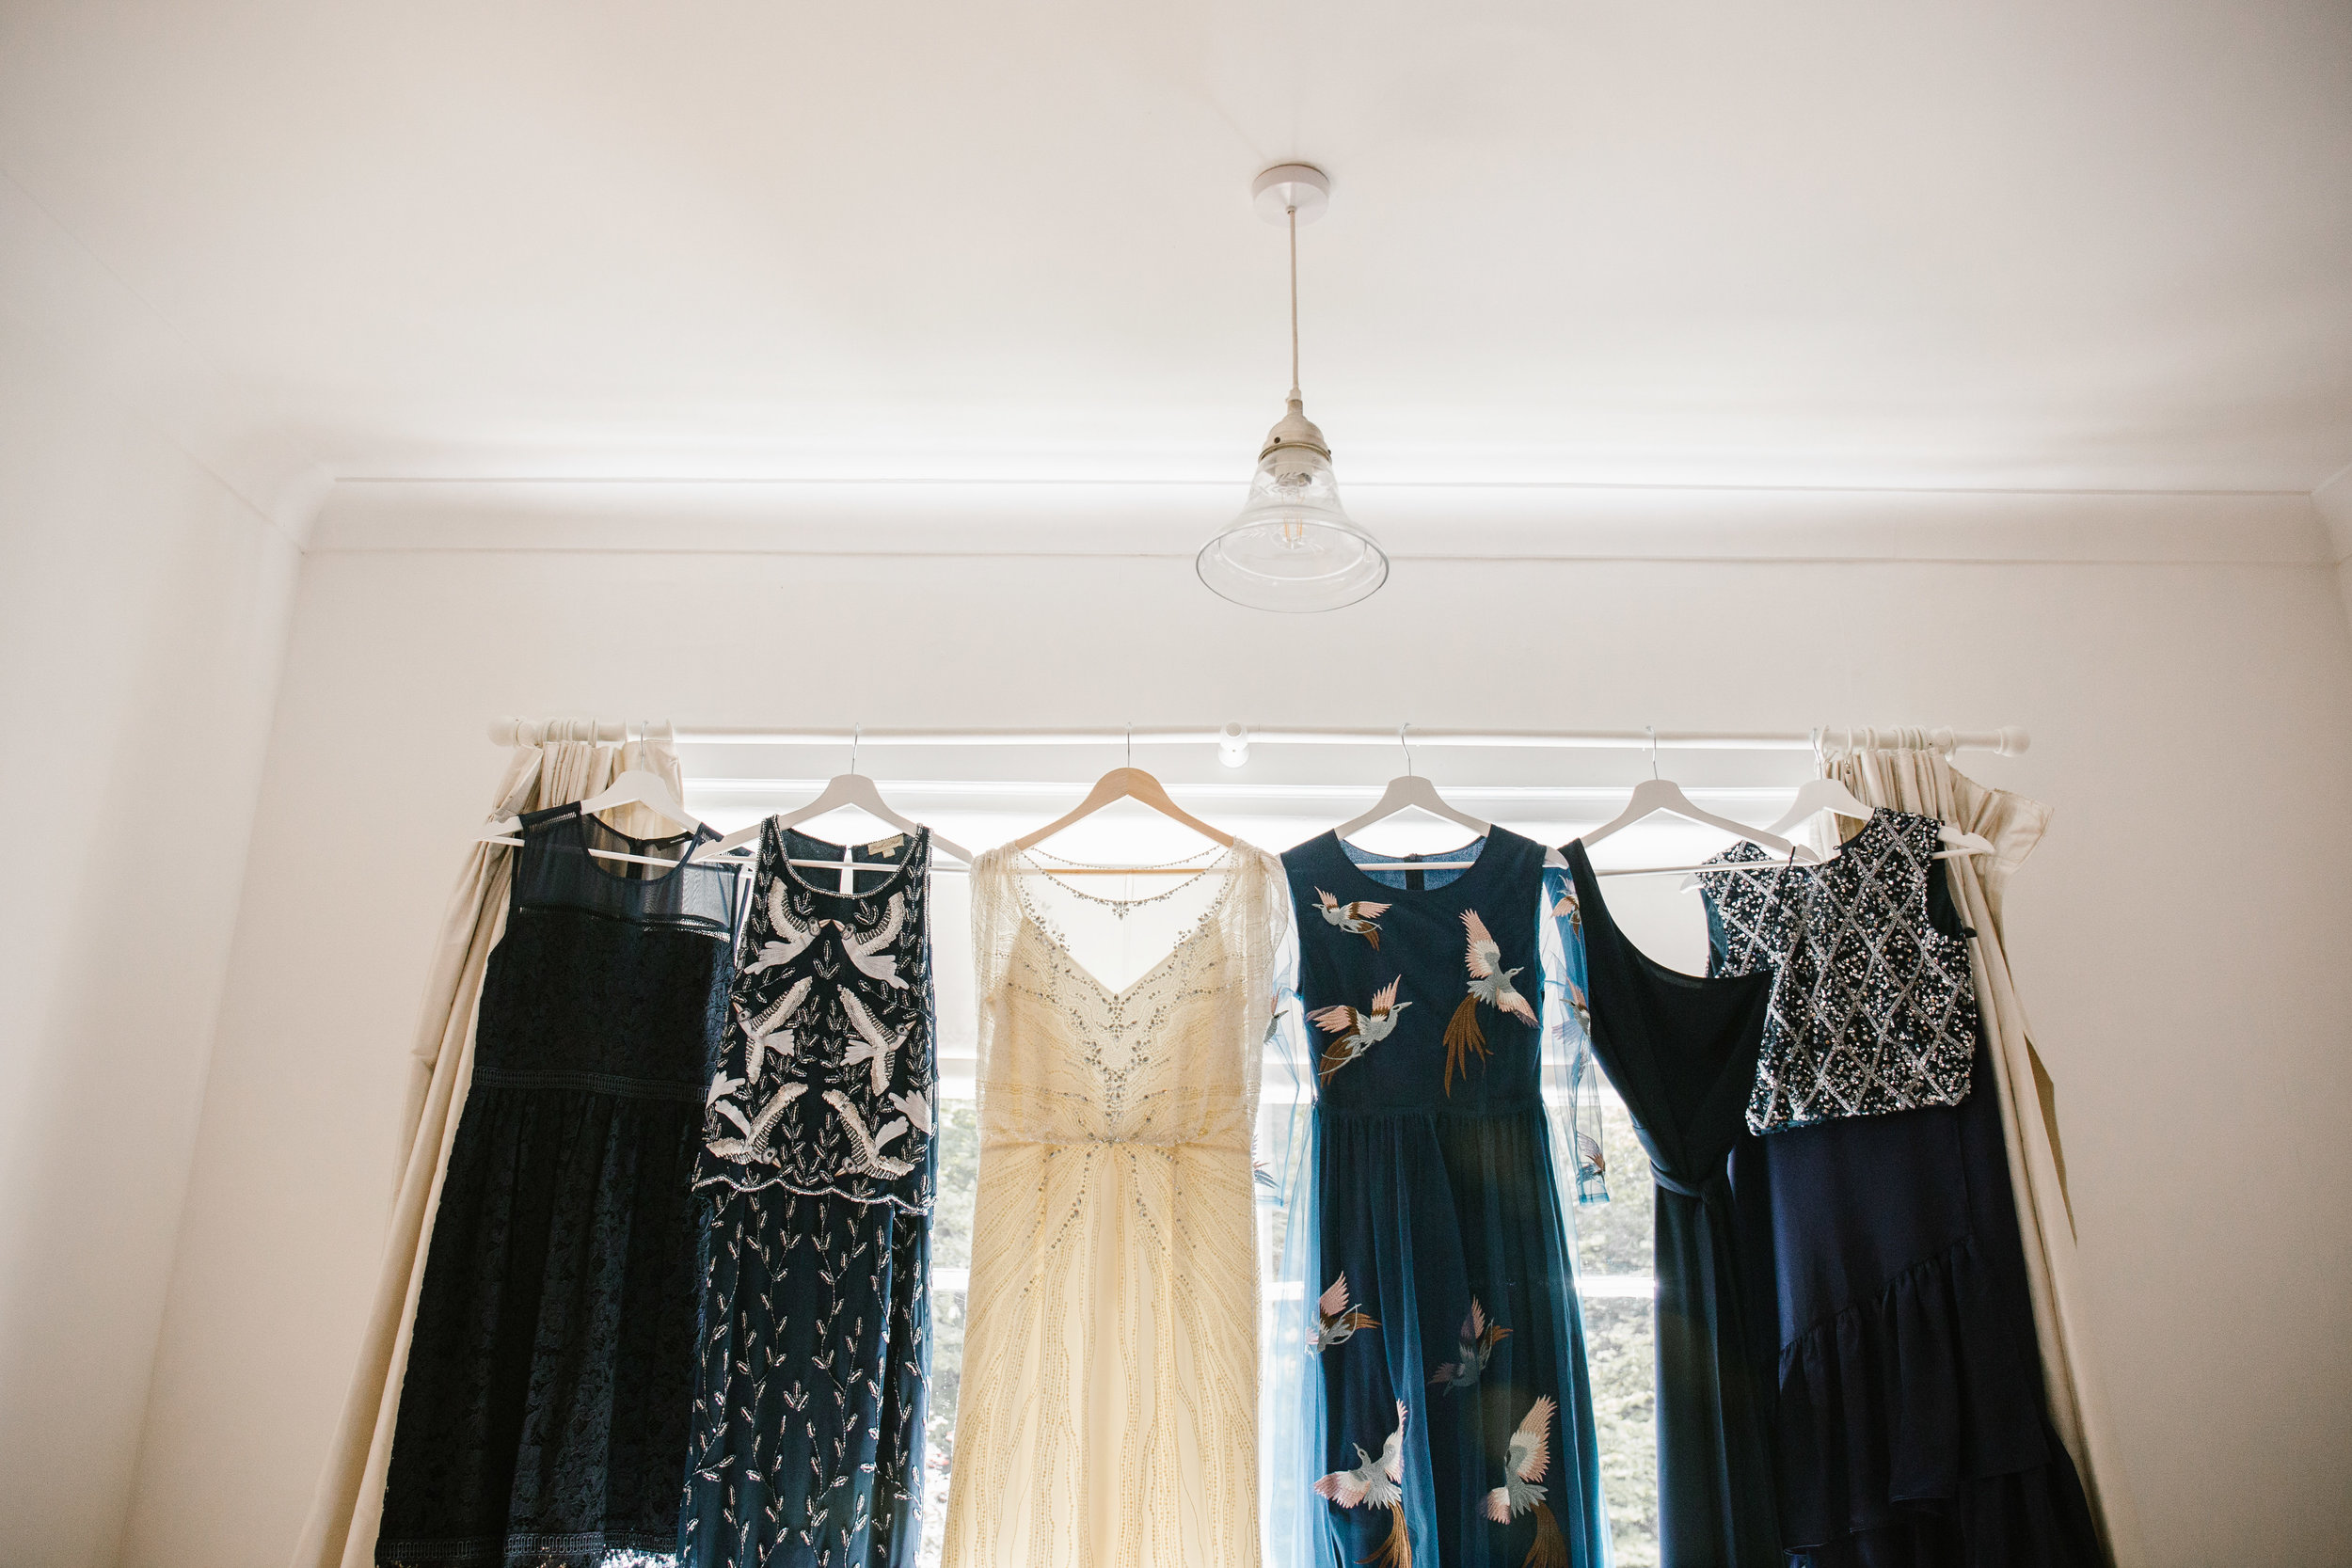 jenny packham wedding dress hanging with navy blue bridesmaids dresses